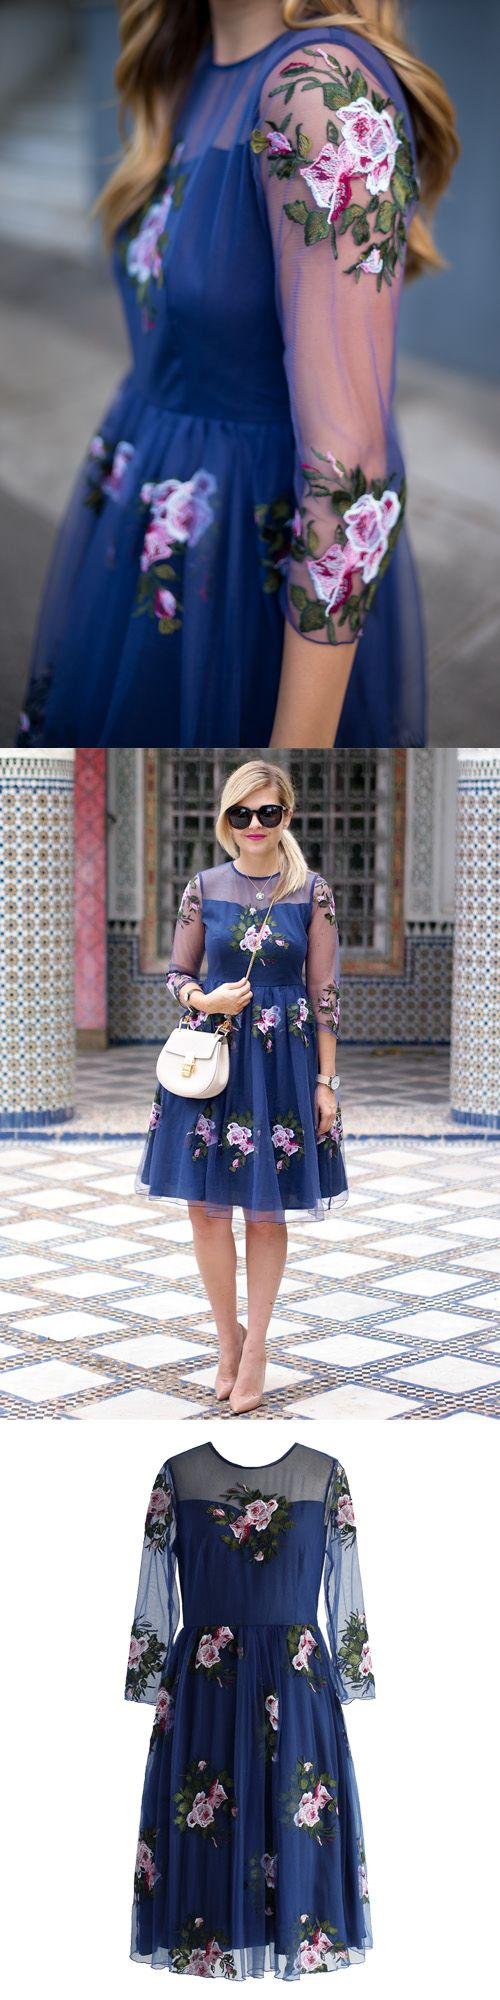 Like a rose garden, you could totally get lost gazing at this navy blue mesh dress featuring large pink and white embroidered roses. The sweetheart bodice, sheer mesh sleeves and swaying silhouette make this the perfect addition to the formal wear in your wardrobe! @GalmeetsGlam @suburbanfauxpas